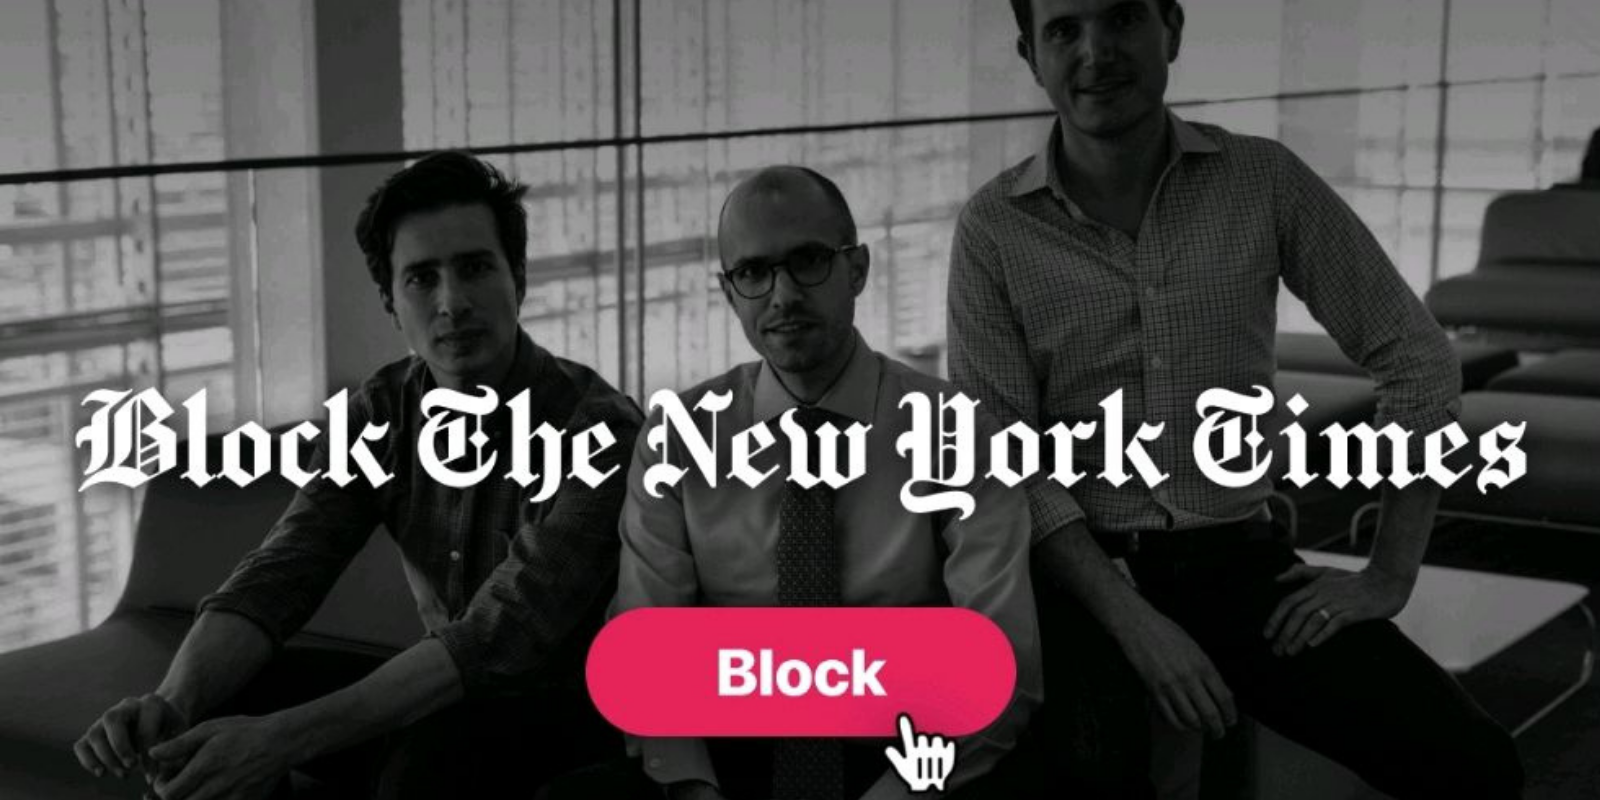 New app blocks The New York Times to prevent spread of disinformation